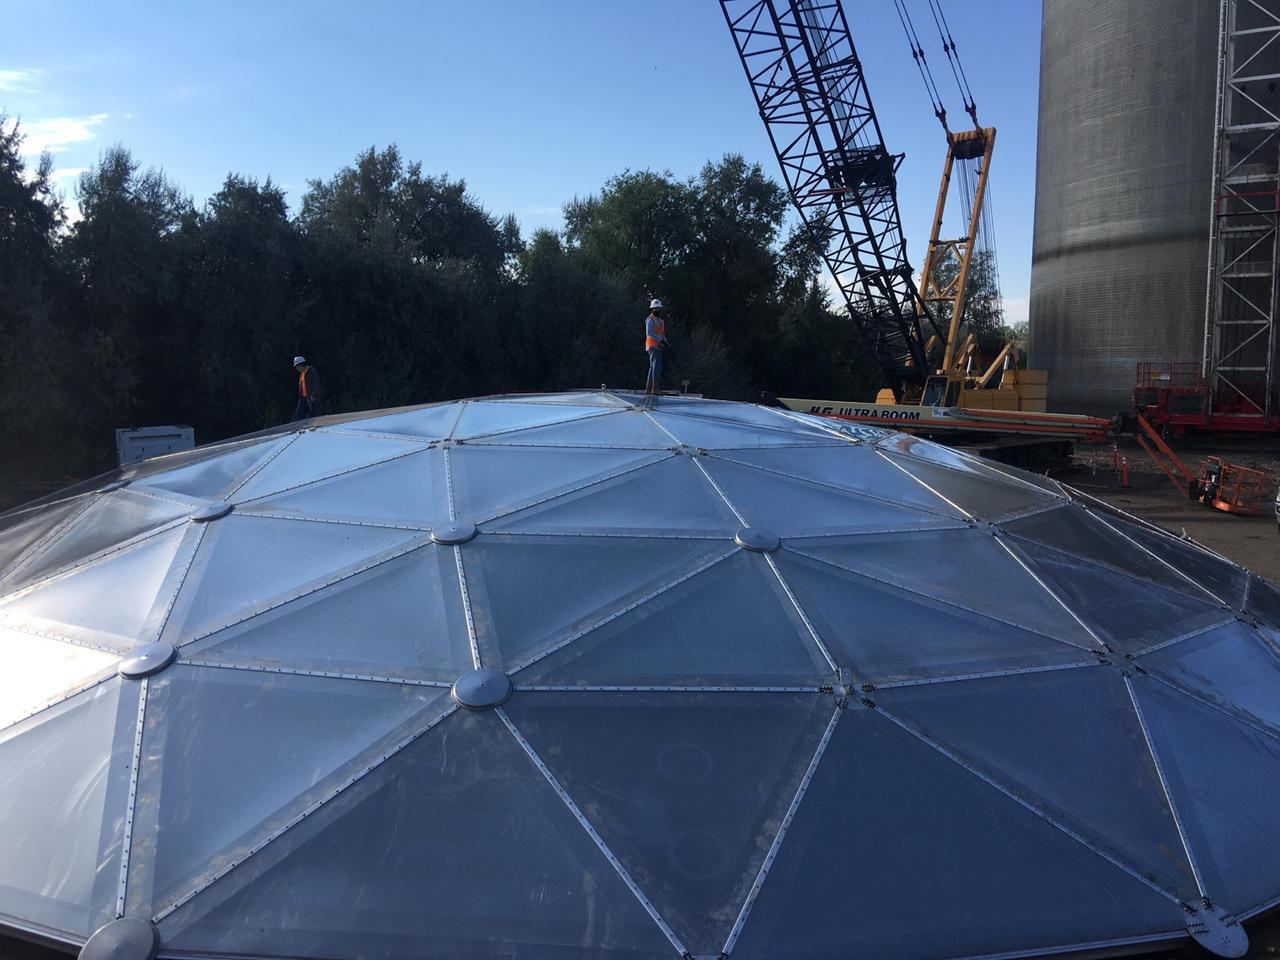 A construction worker standing on top of an aluminum geodesic dome roof.